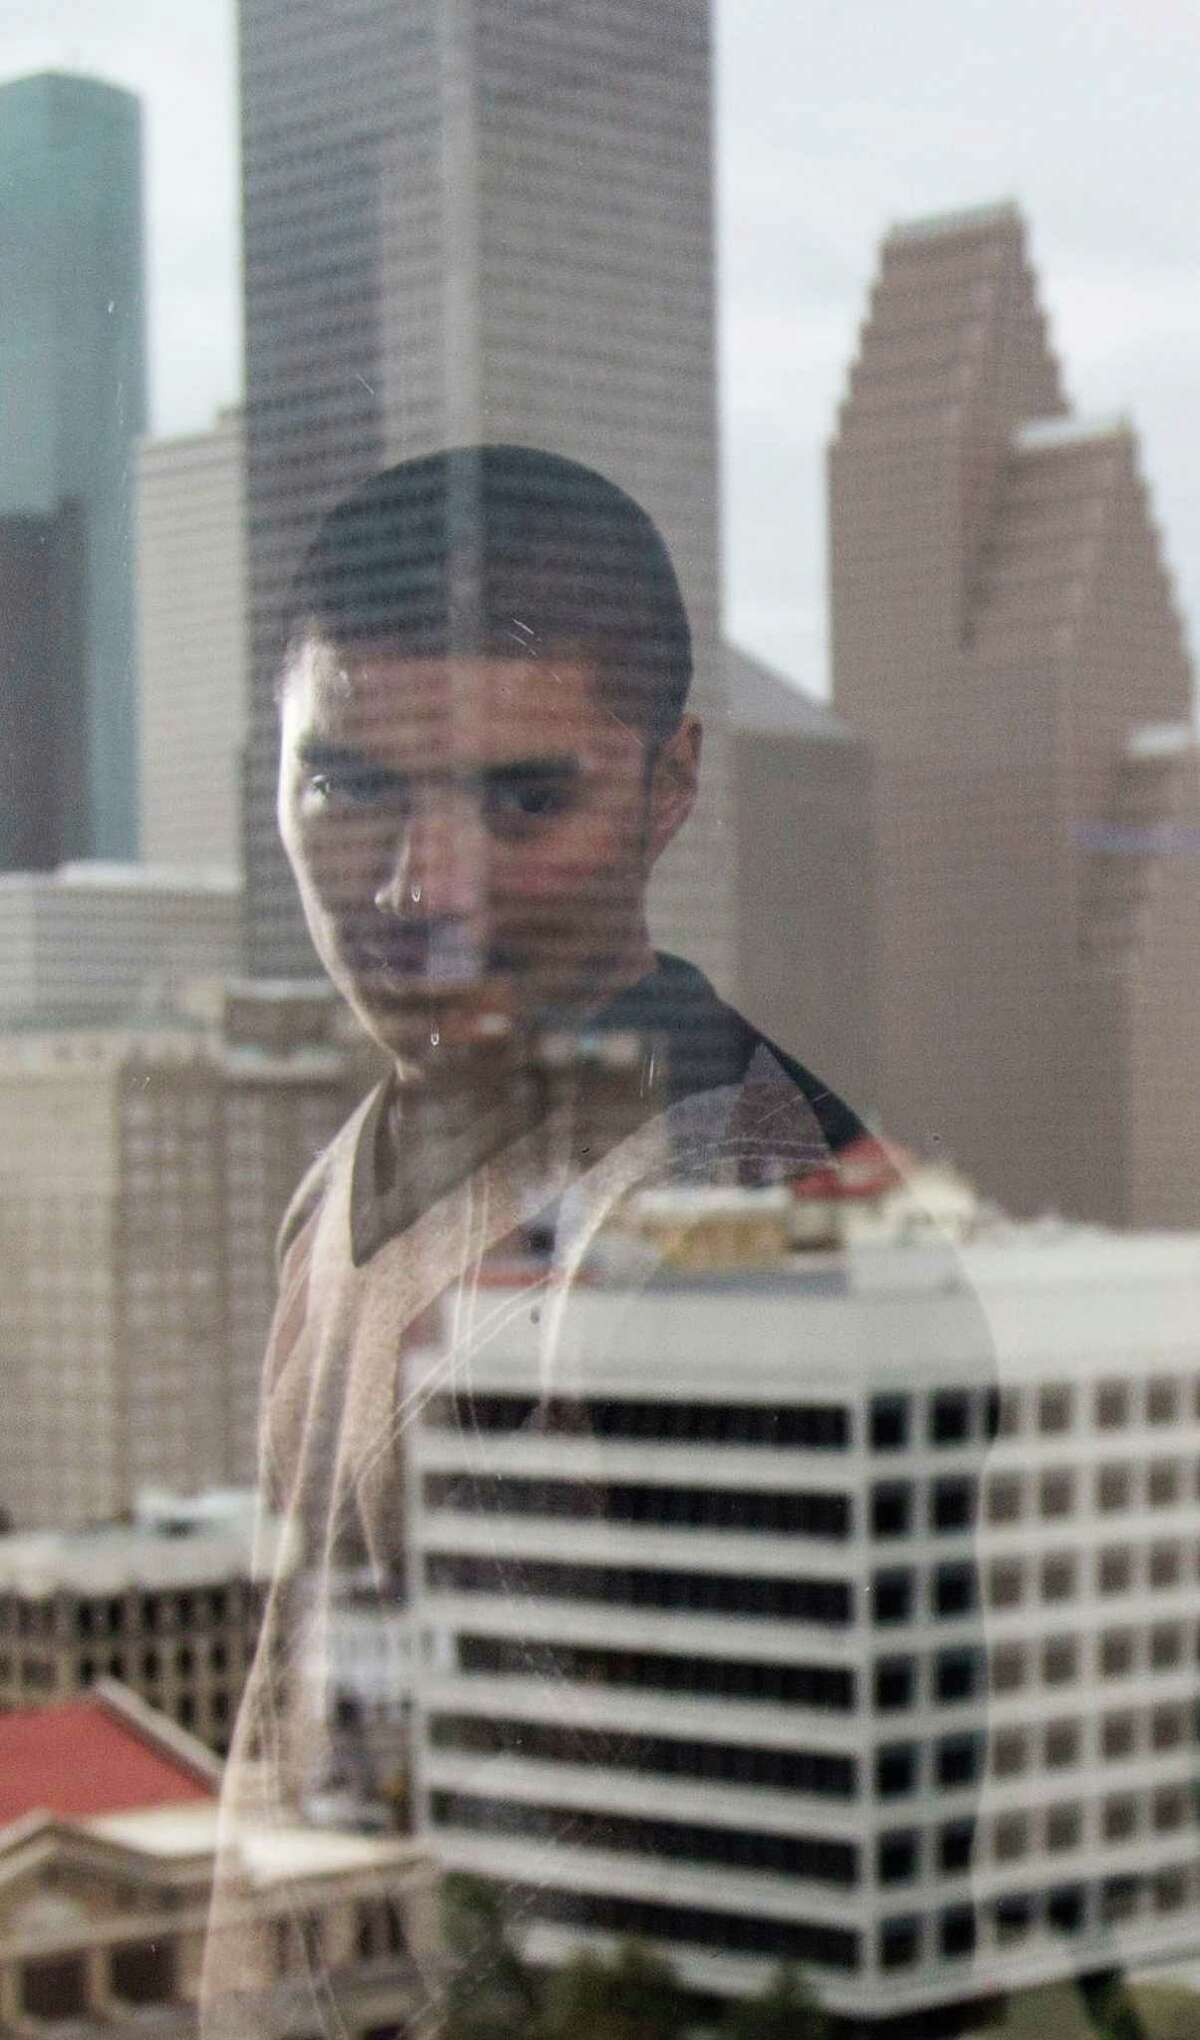 Joseph Salazar is reflected in a window at the Public Defender's Office Monday, Oct. 26, 2015, in downtown Houston.Salazar was accused of trying to disarm a peace officer at the Harris County Jail last July. His court-appointed public defender was able to get his case dismissed after he subpoenaed jailhouse video showing the incident.